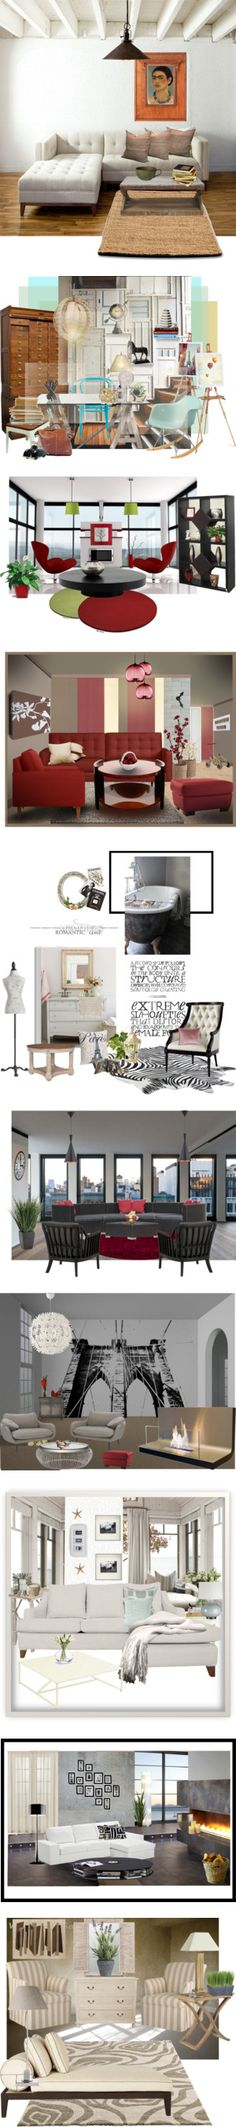 """Top Interior Design Sets for Oct 26th, 2012"" by polyvore ❤ liked on Polyvore"